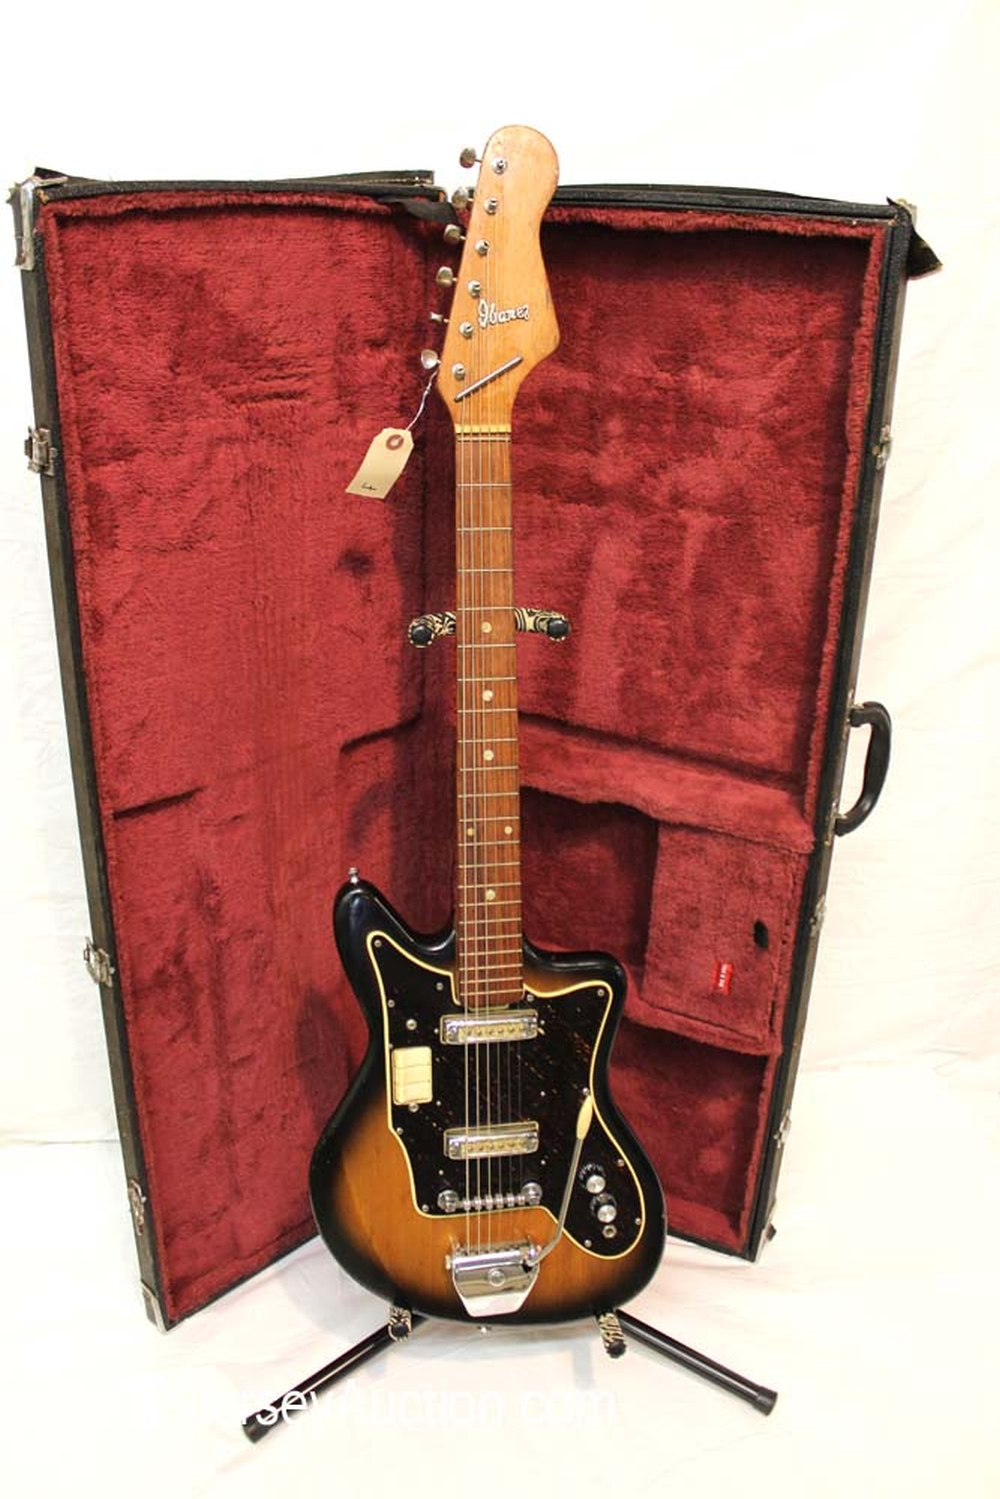 1962 Ibanez model 882 all original slight belt buckle good condition for a '62 with hard case